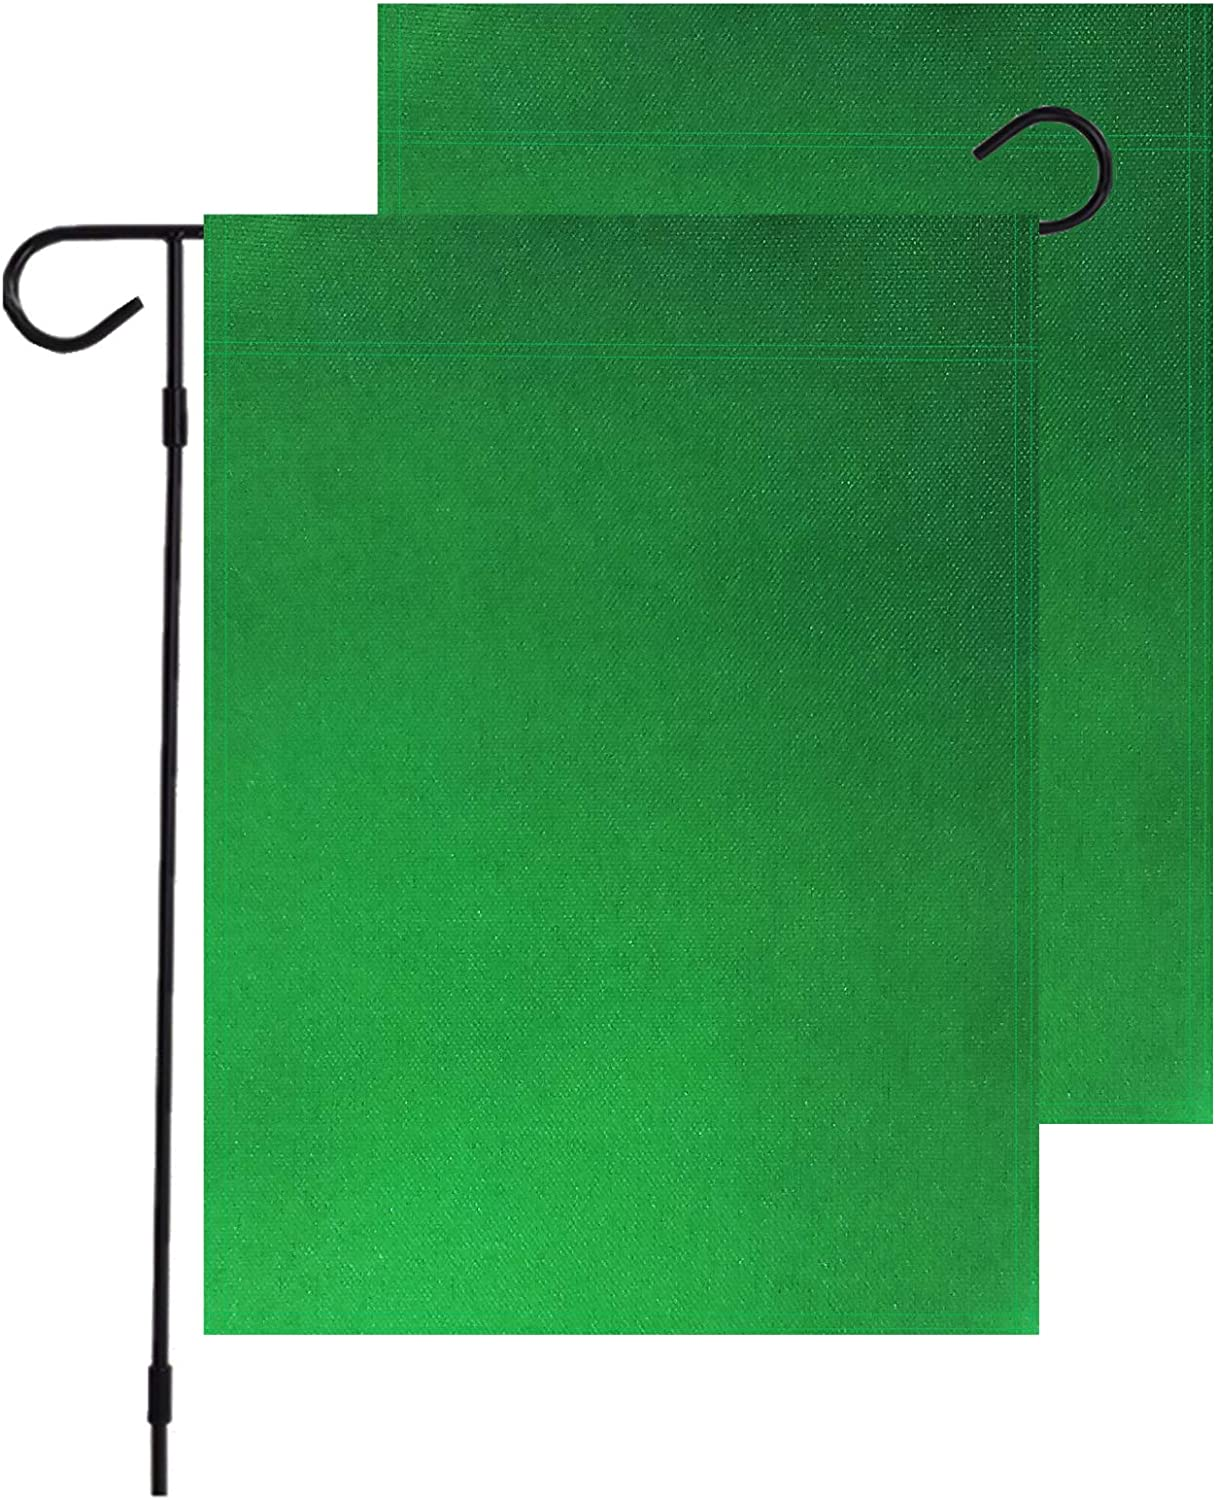 "InnoFun Solid Color Green Decorative Garden Flags,Plain Colored Blank Banner Double Sided DIY Flags 12""x 18"",Party Yard Outdoor Home Decoration (Green)"